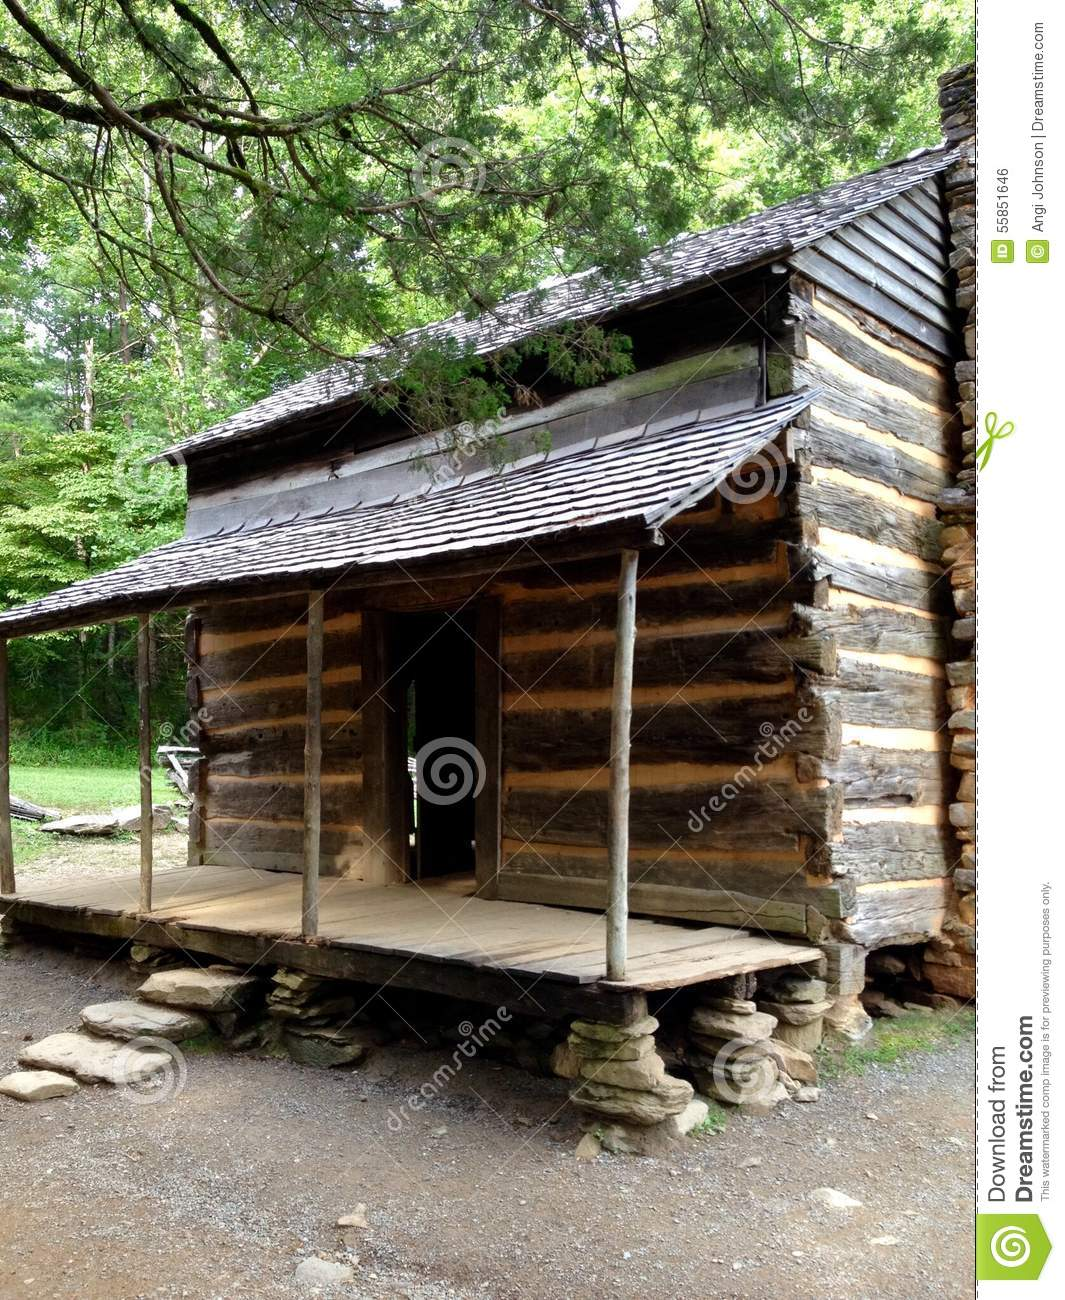 Old Time Cabin Stock Photo - Image: 55851646